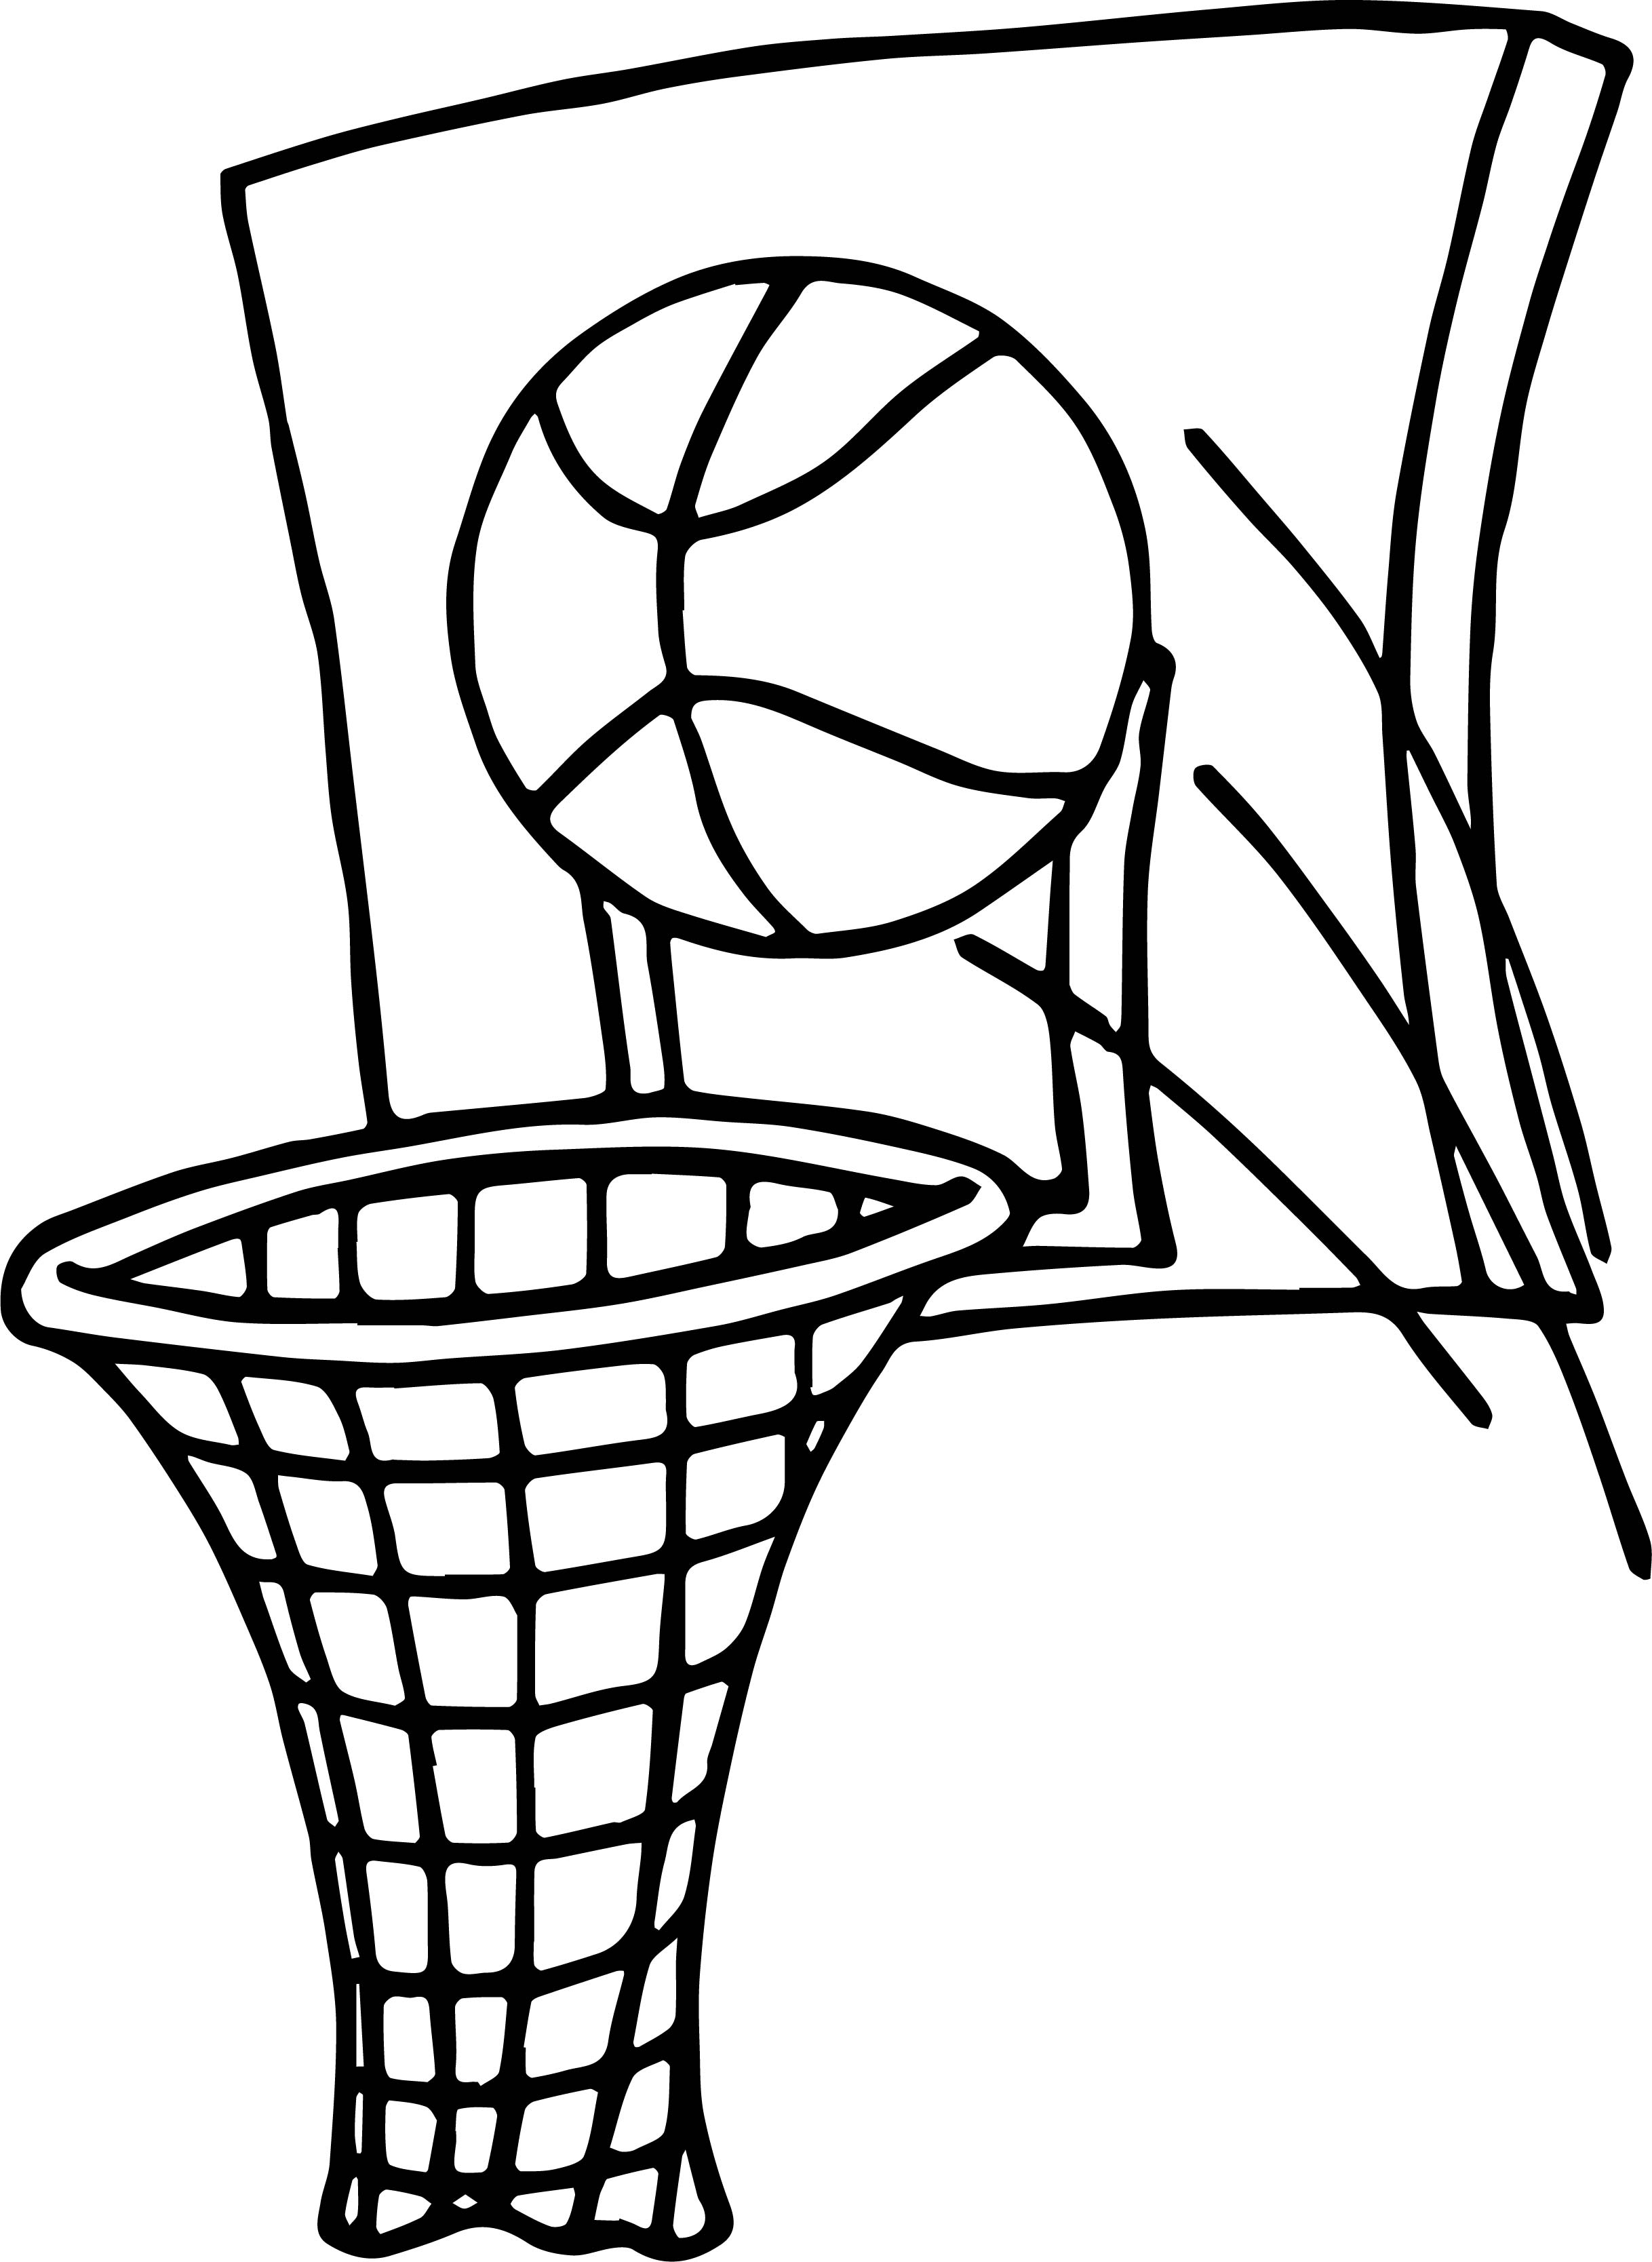 2436x3335 Ball Shot Playing Basketball Coloring Page Wecoloringpage